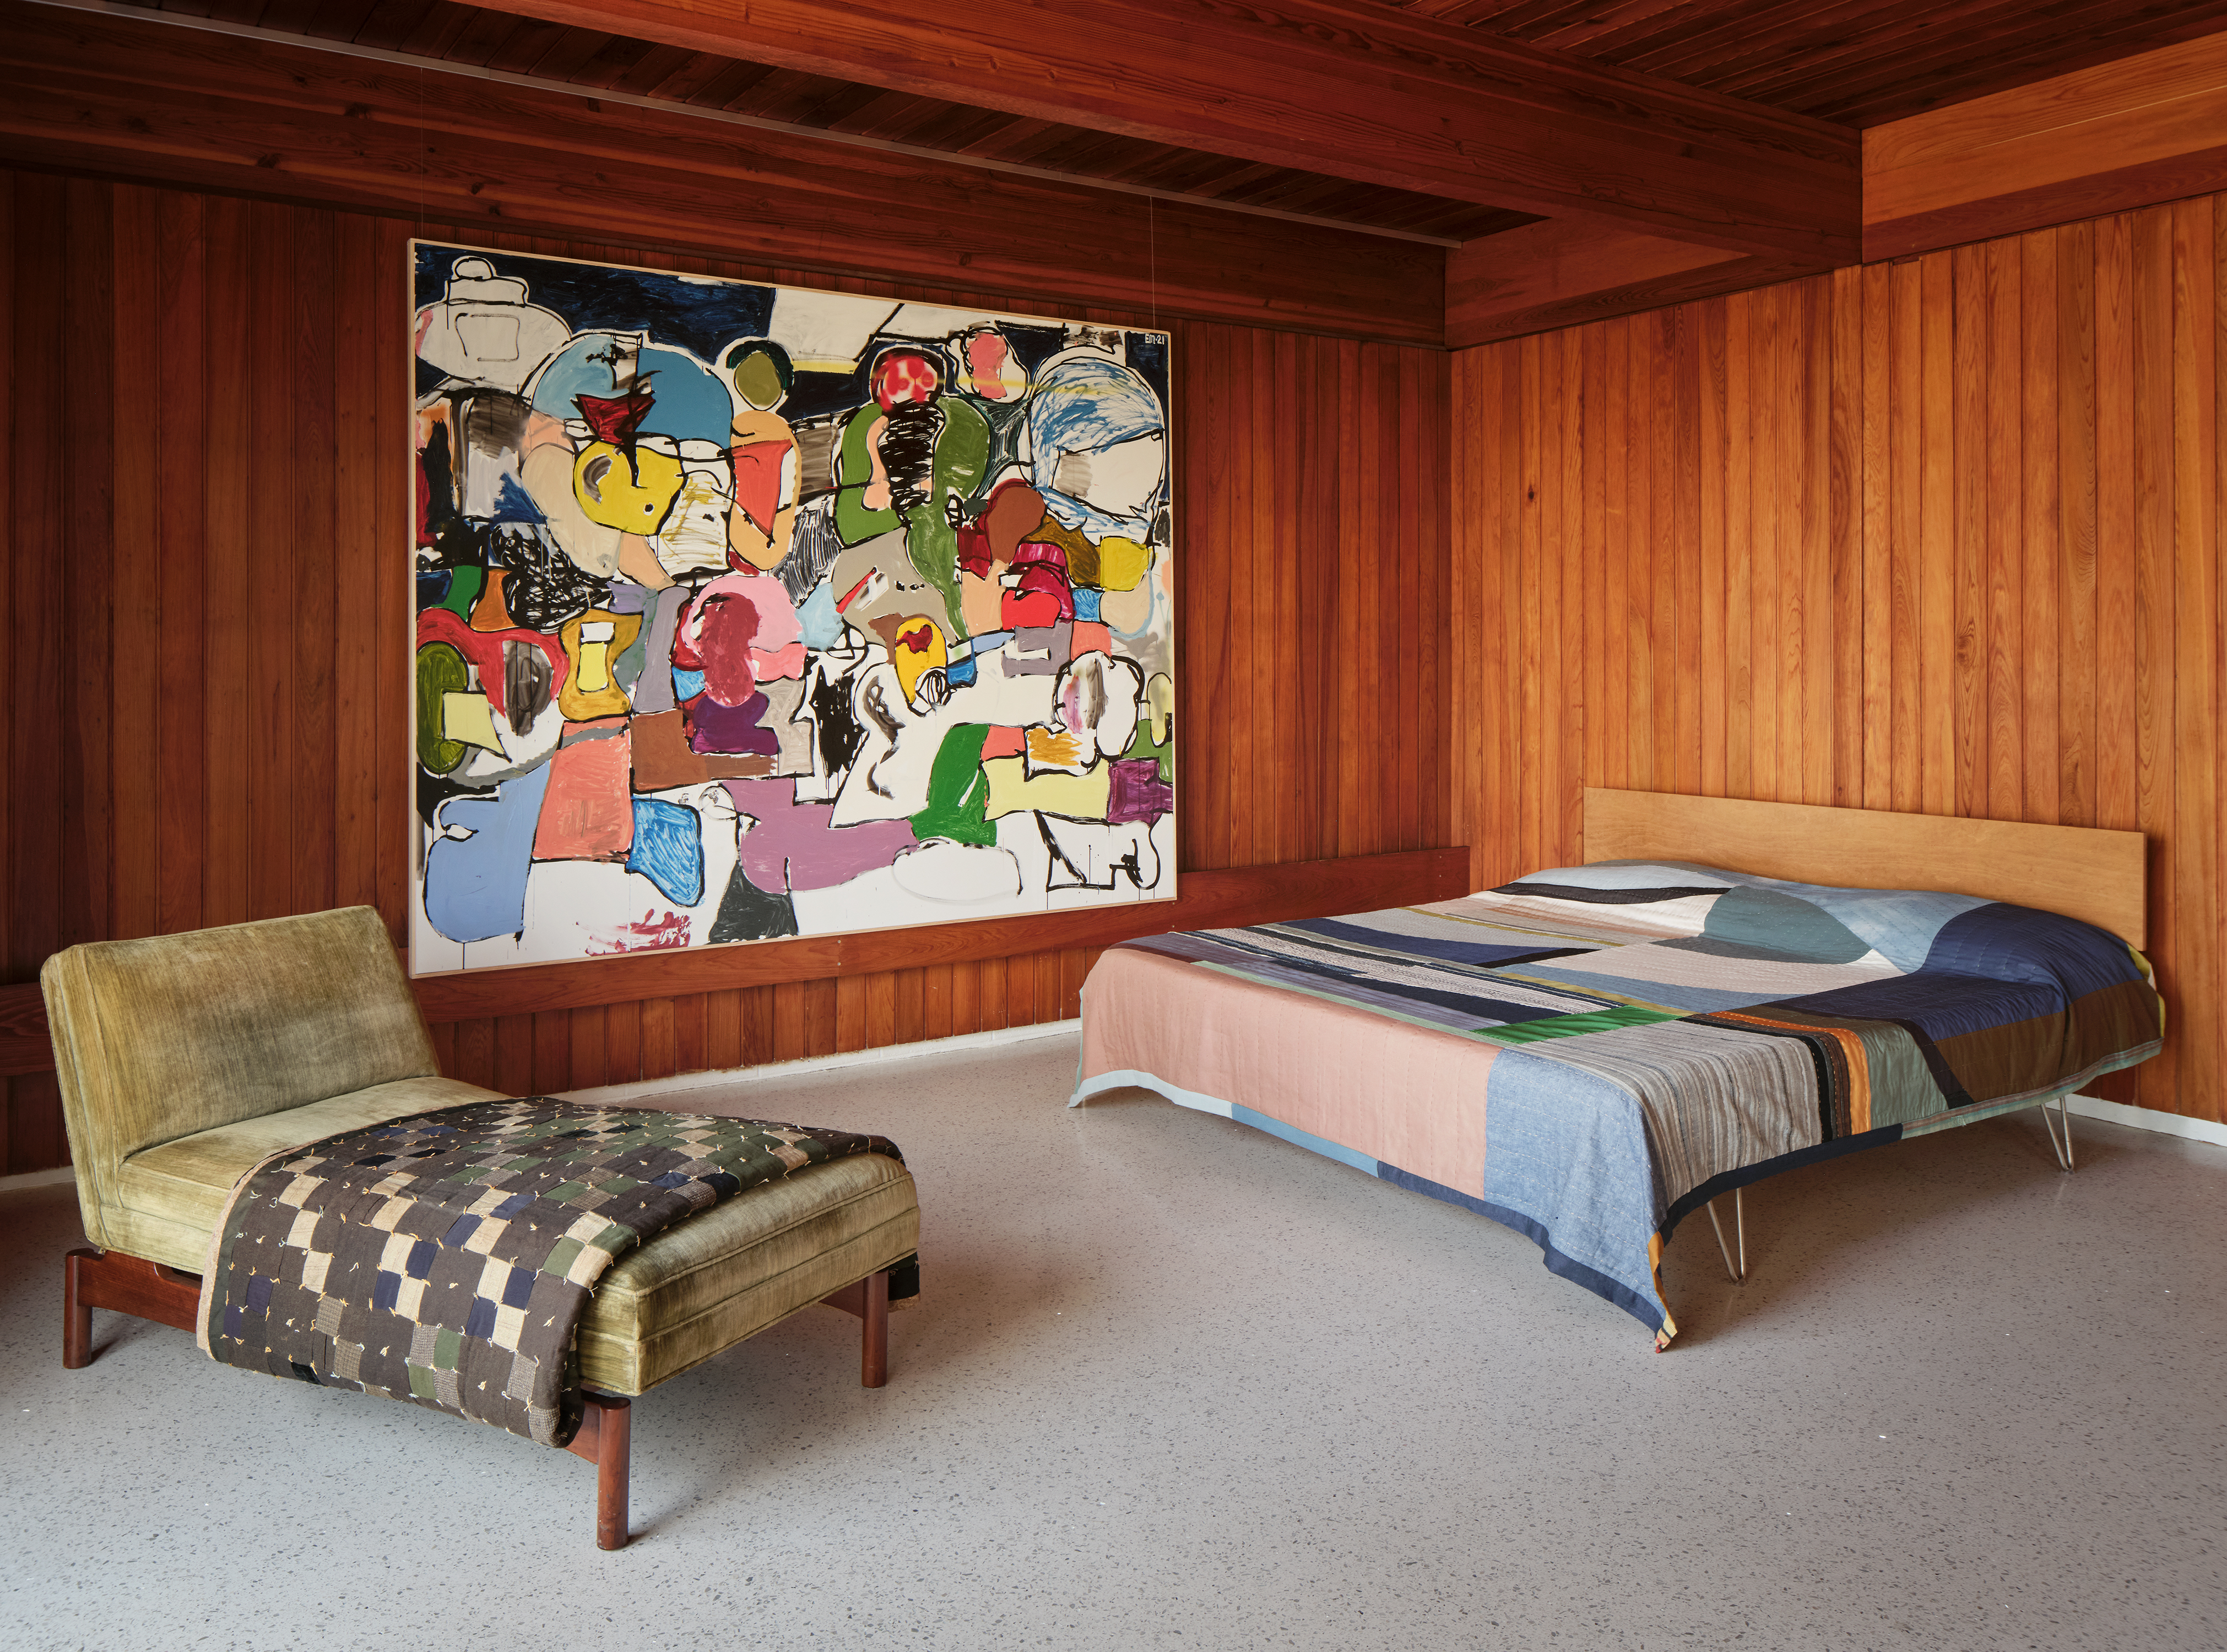 At The Luss House: Blum & Poe, Mendes Wood DM and Object & Thing. The Gerald Luss House, Ossining, New York. Photo by Michael Biondo. Works pictured [left to right]: Gerald Luss, Chaise for Lehigh Furniture Company (c. 1950s); Eddie Martinez, Ideal Location (2021); Kiva Motnyk, Botanic Study - Indigo (2021).